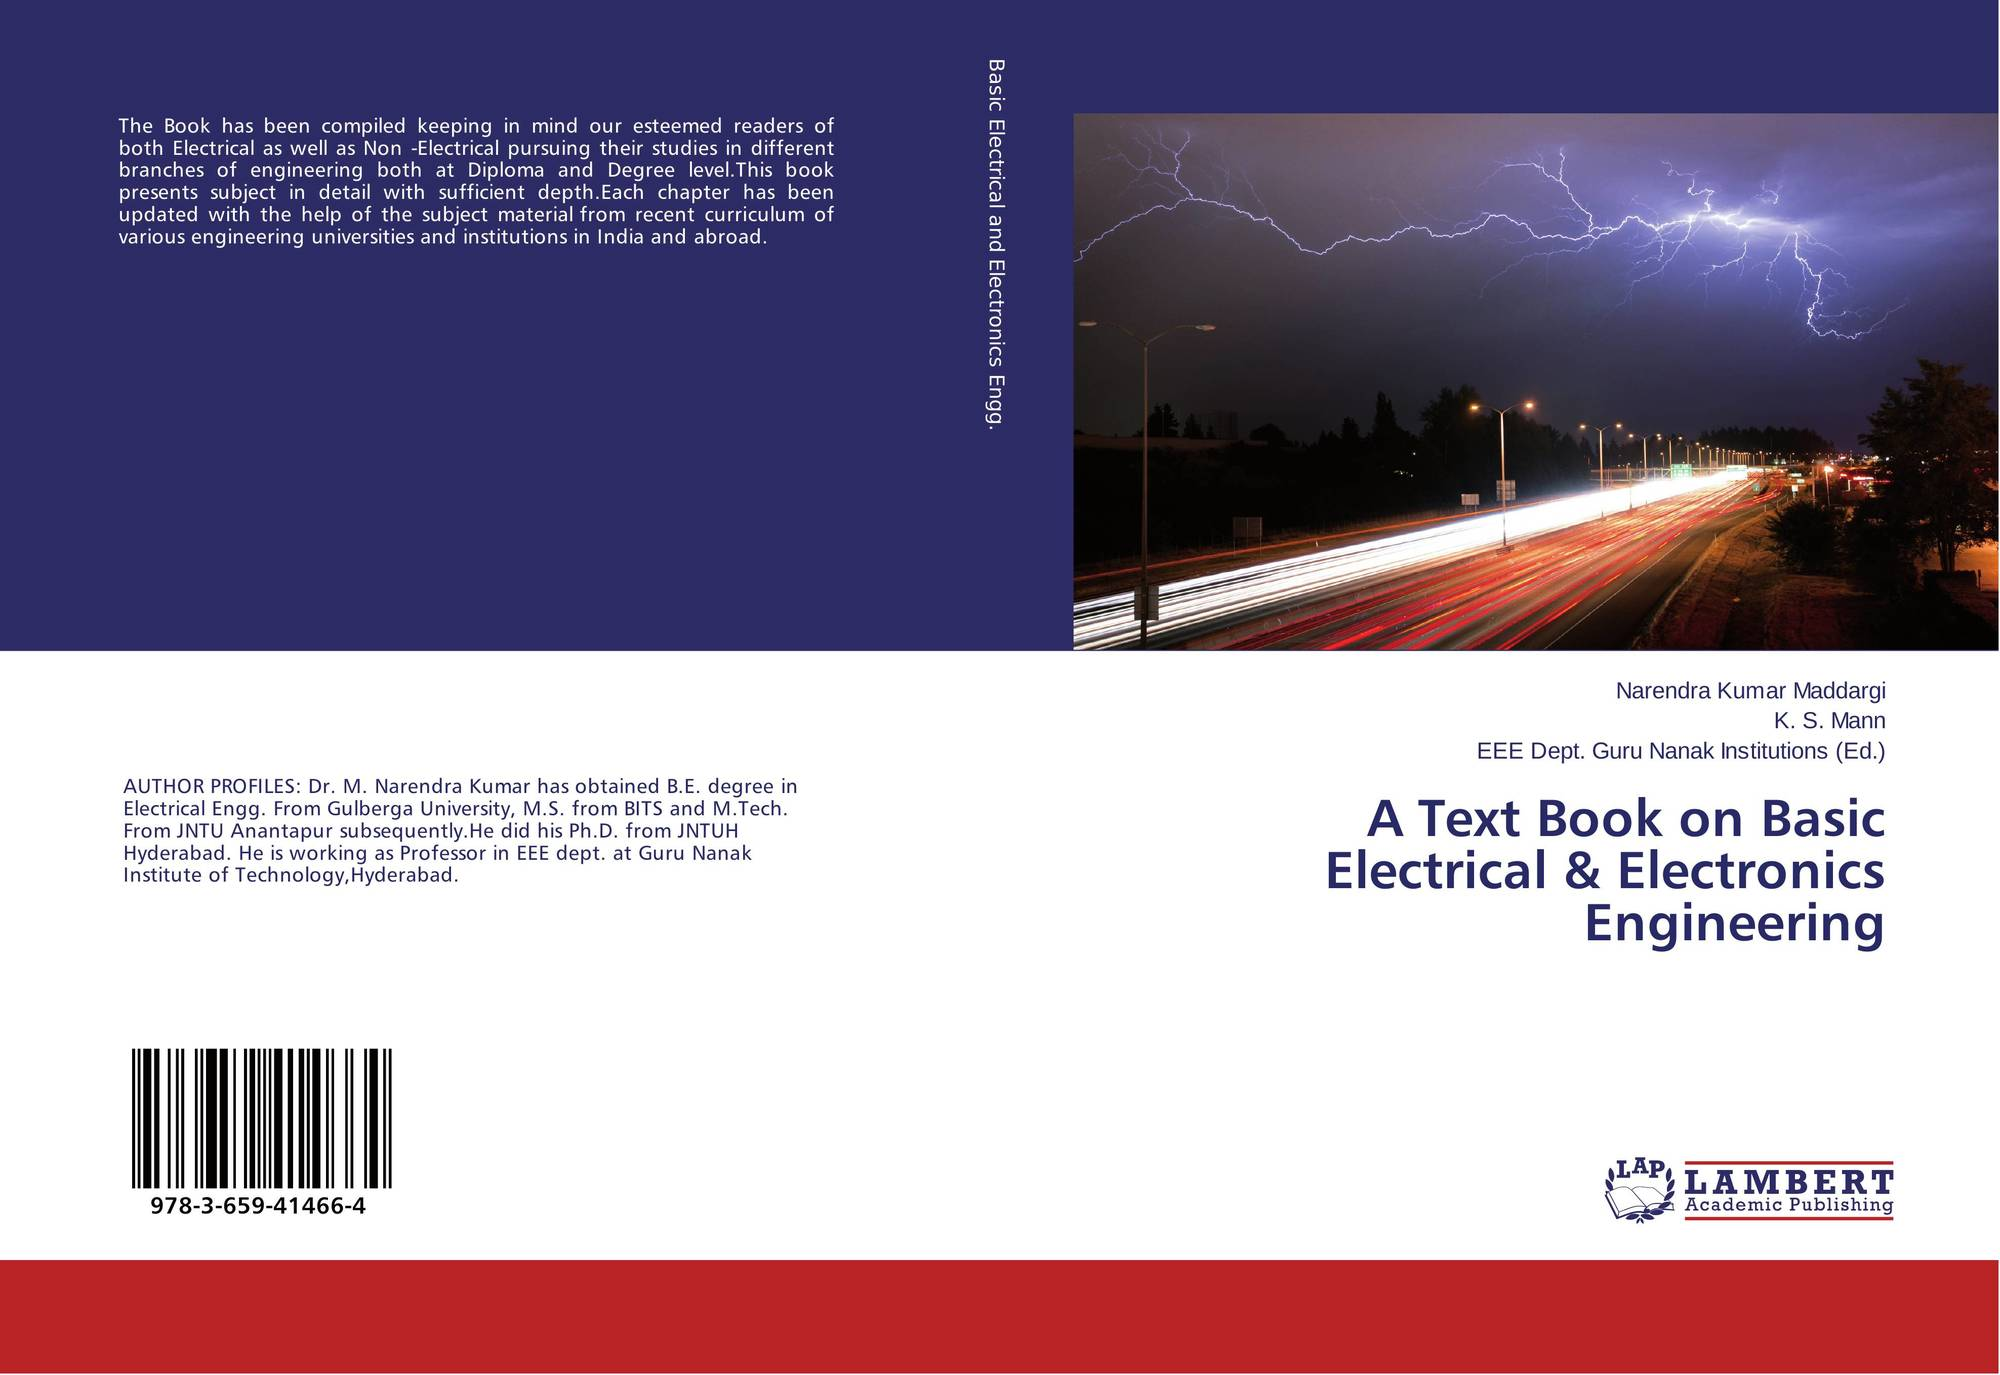 A Text Book On Basic Electrical Electronics Engineering 978 3 659